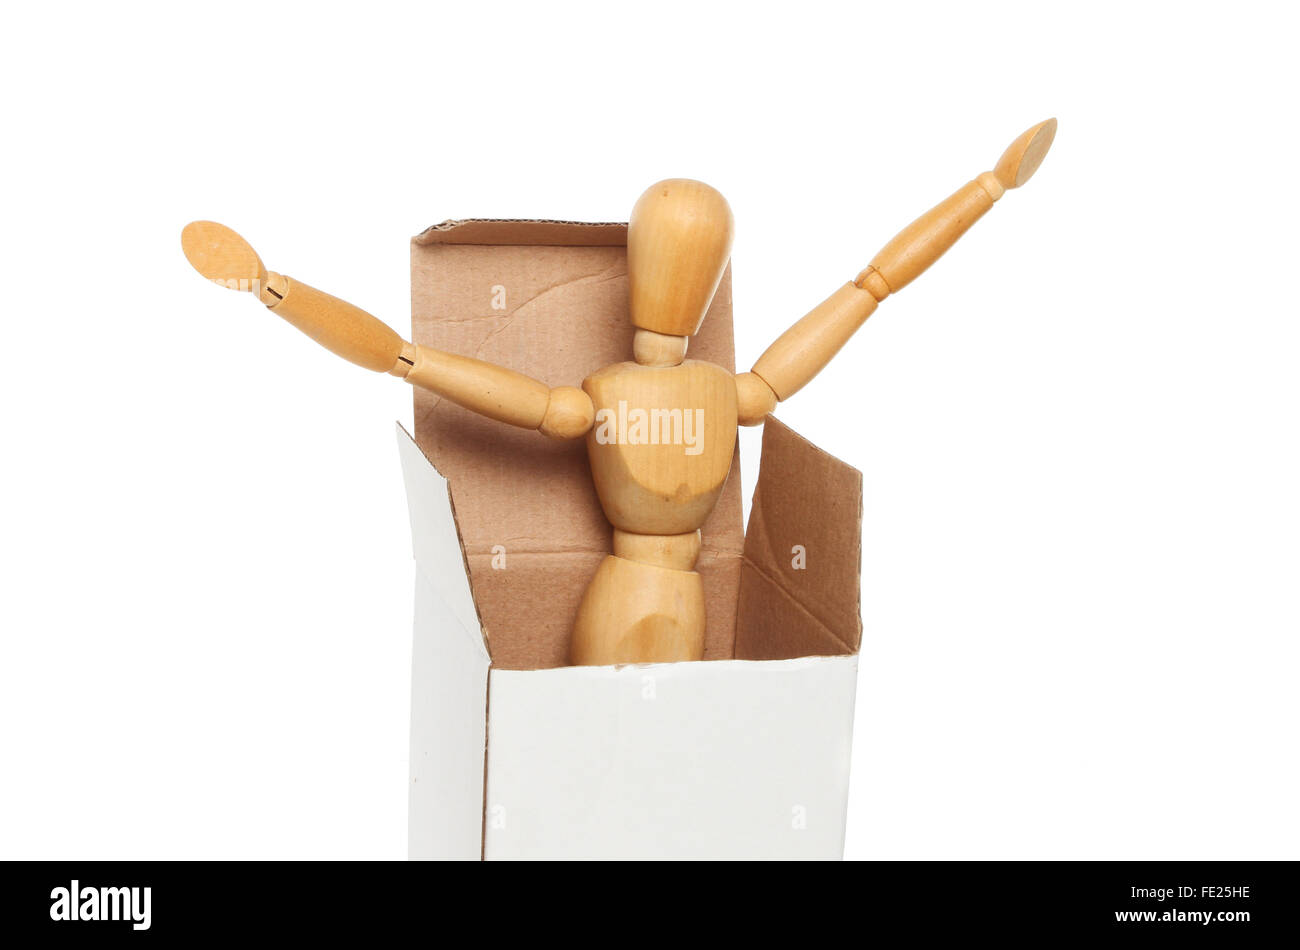 An artist's wooden manikin springs out of a cardboard box isolated against white - Stock Image